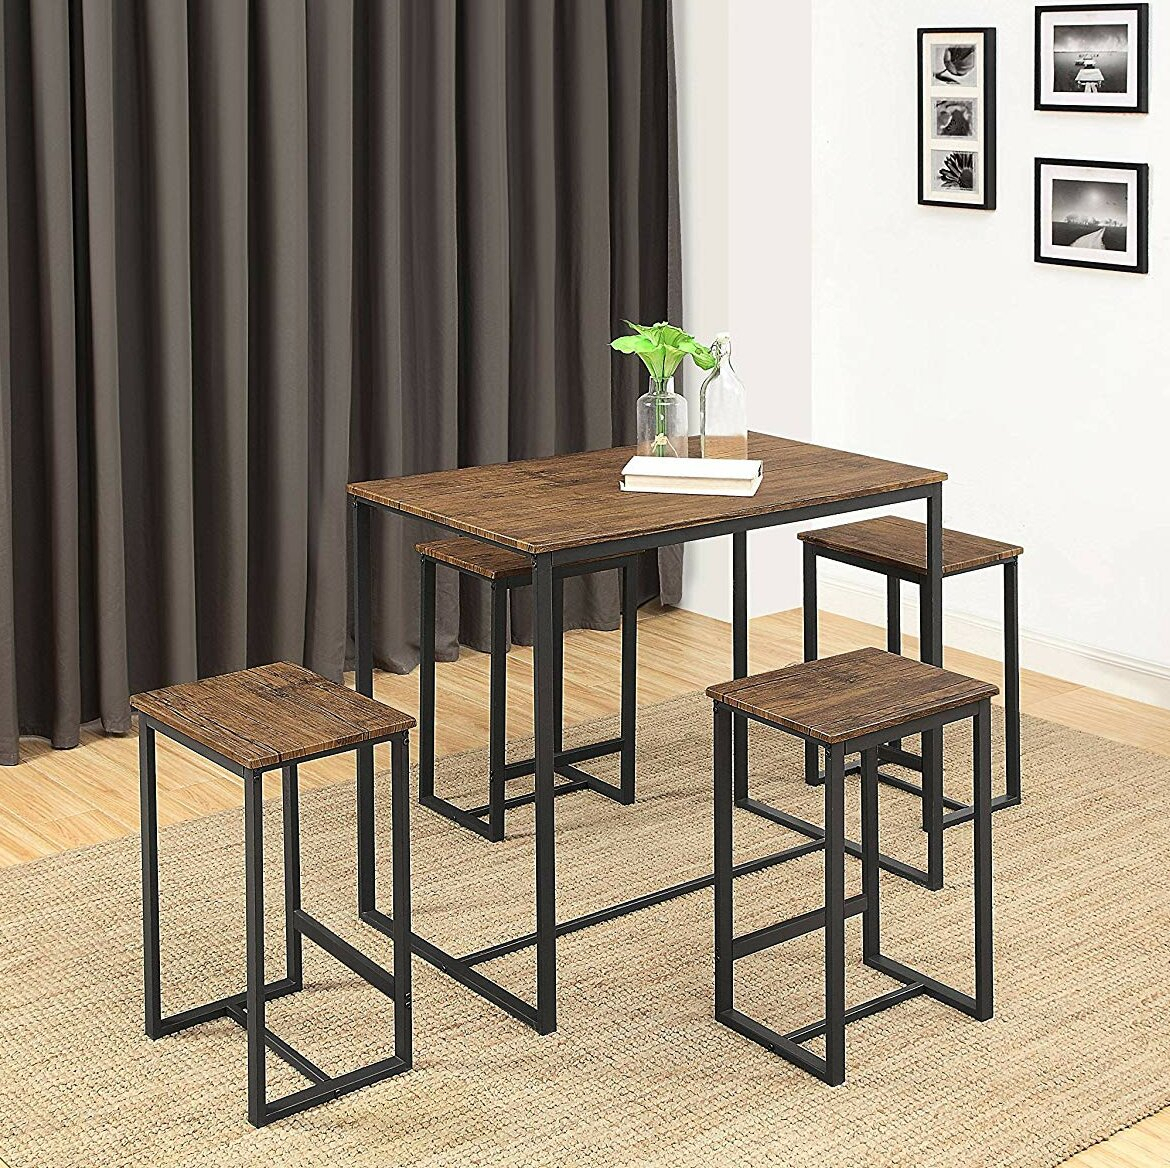 Delmar 5 Piece Dining Set Throughout Best And Newest Wallflower 3 Piece Dining Sets (Image 1 of 20)